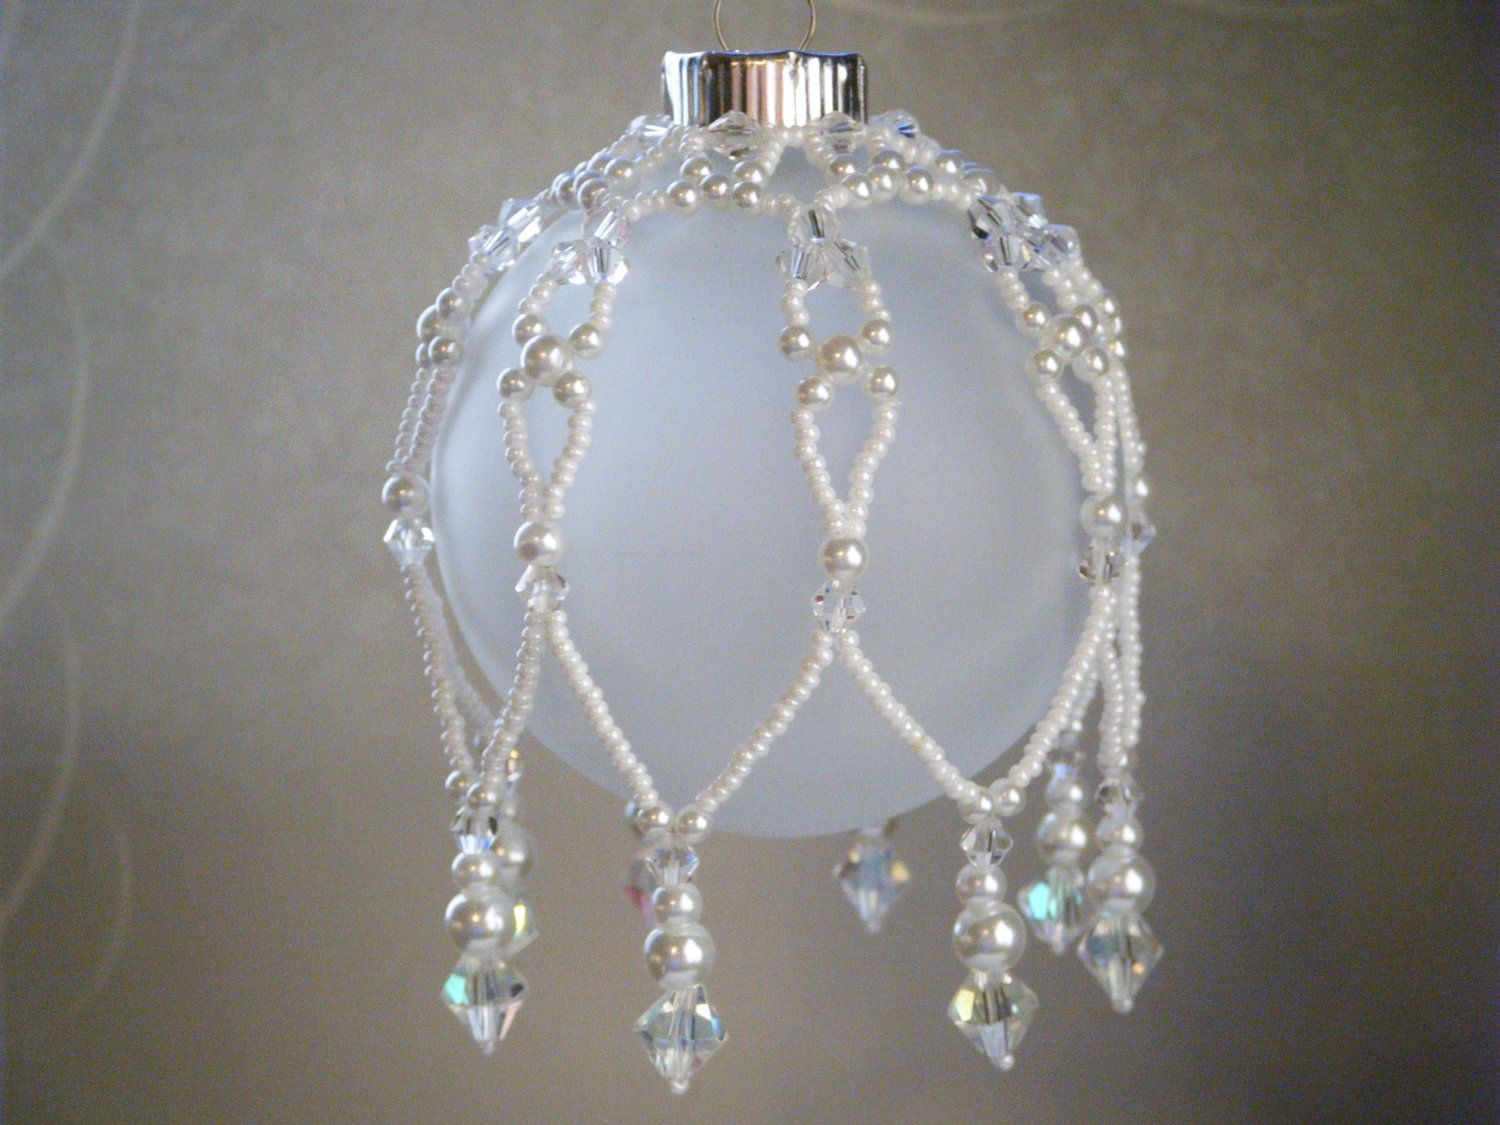 Christmas Ornament Beaded Ornament Cover Christmas Tree Ornament Clear Crystal Whit Beaded Christmas Decorations Beaded Ornament Covers Beaded Ornaments